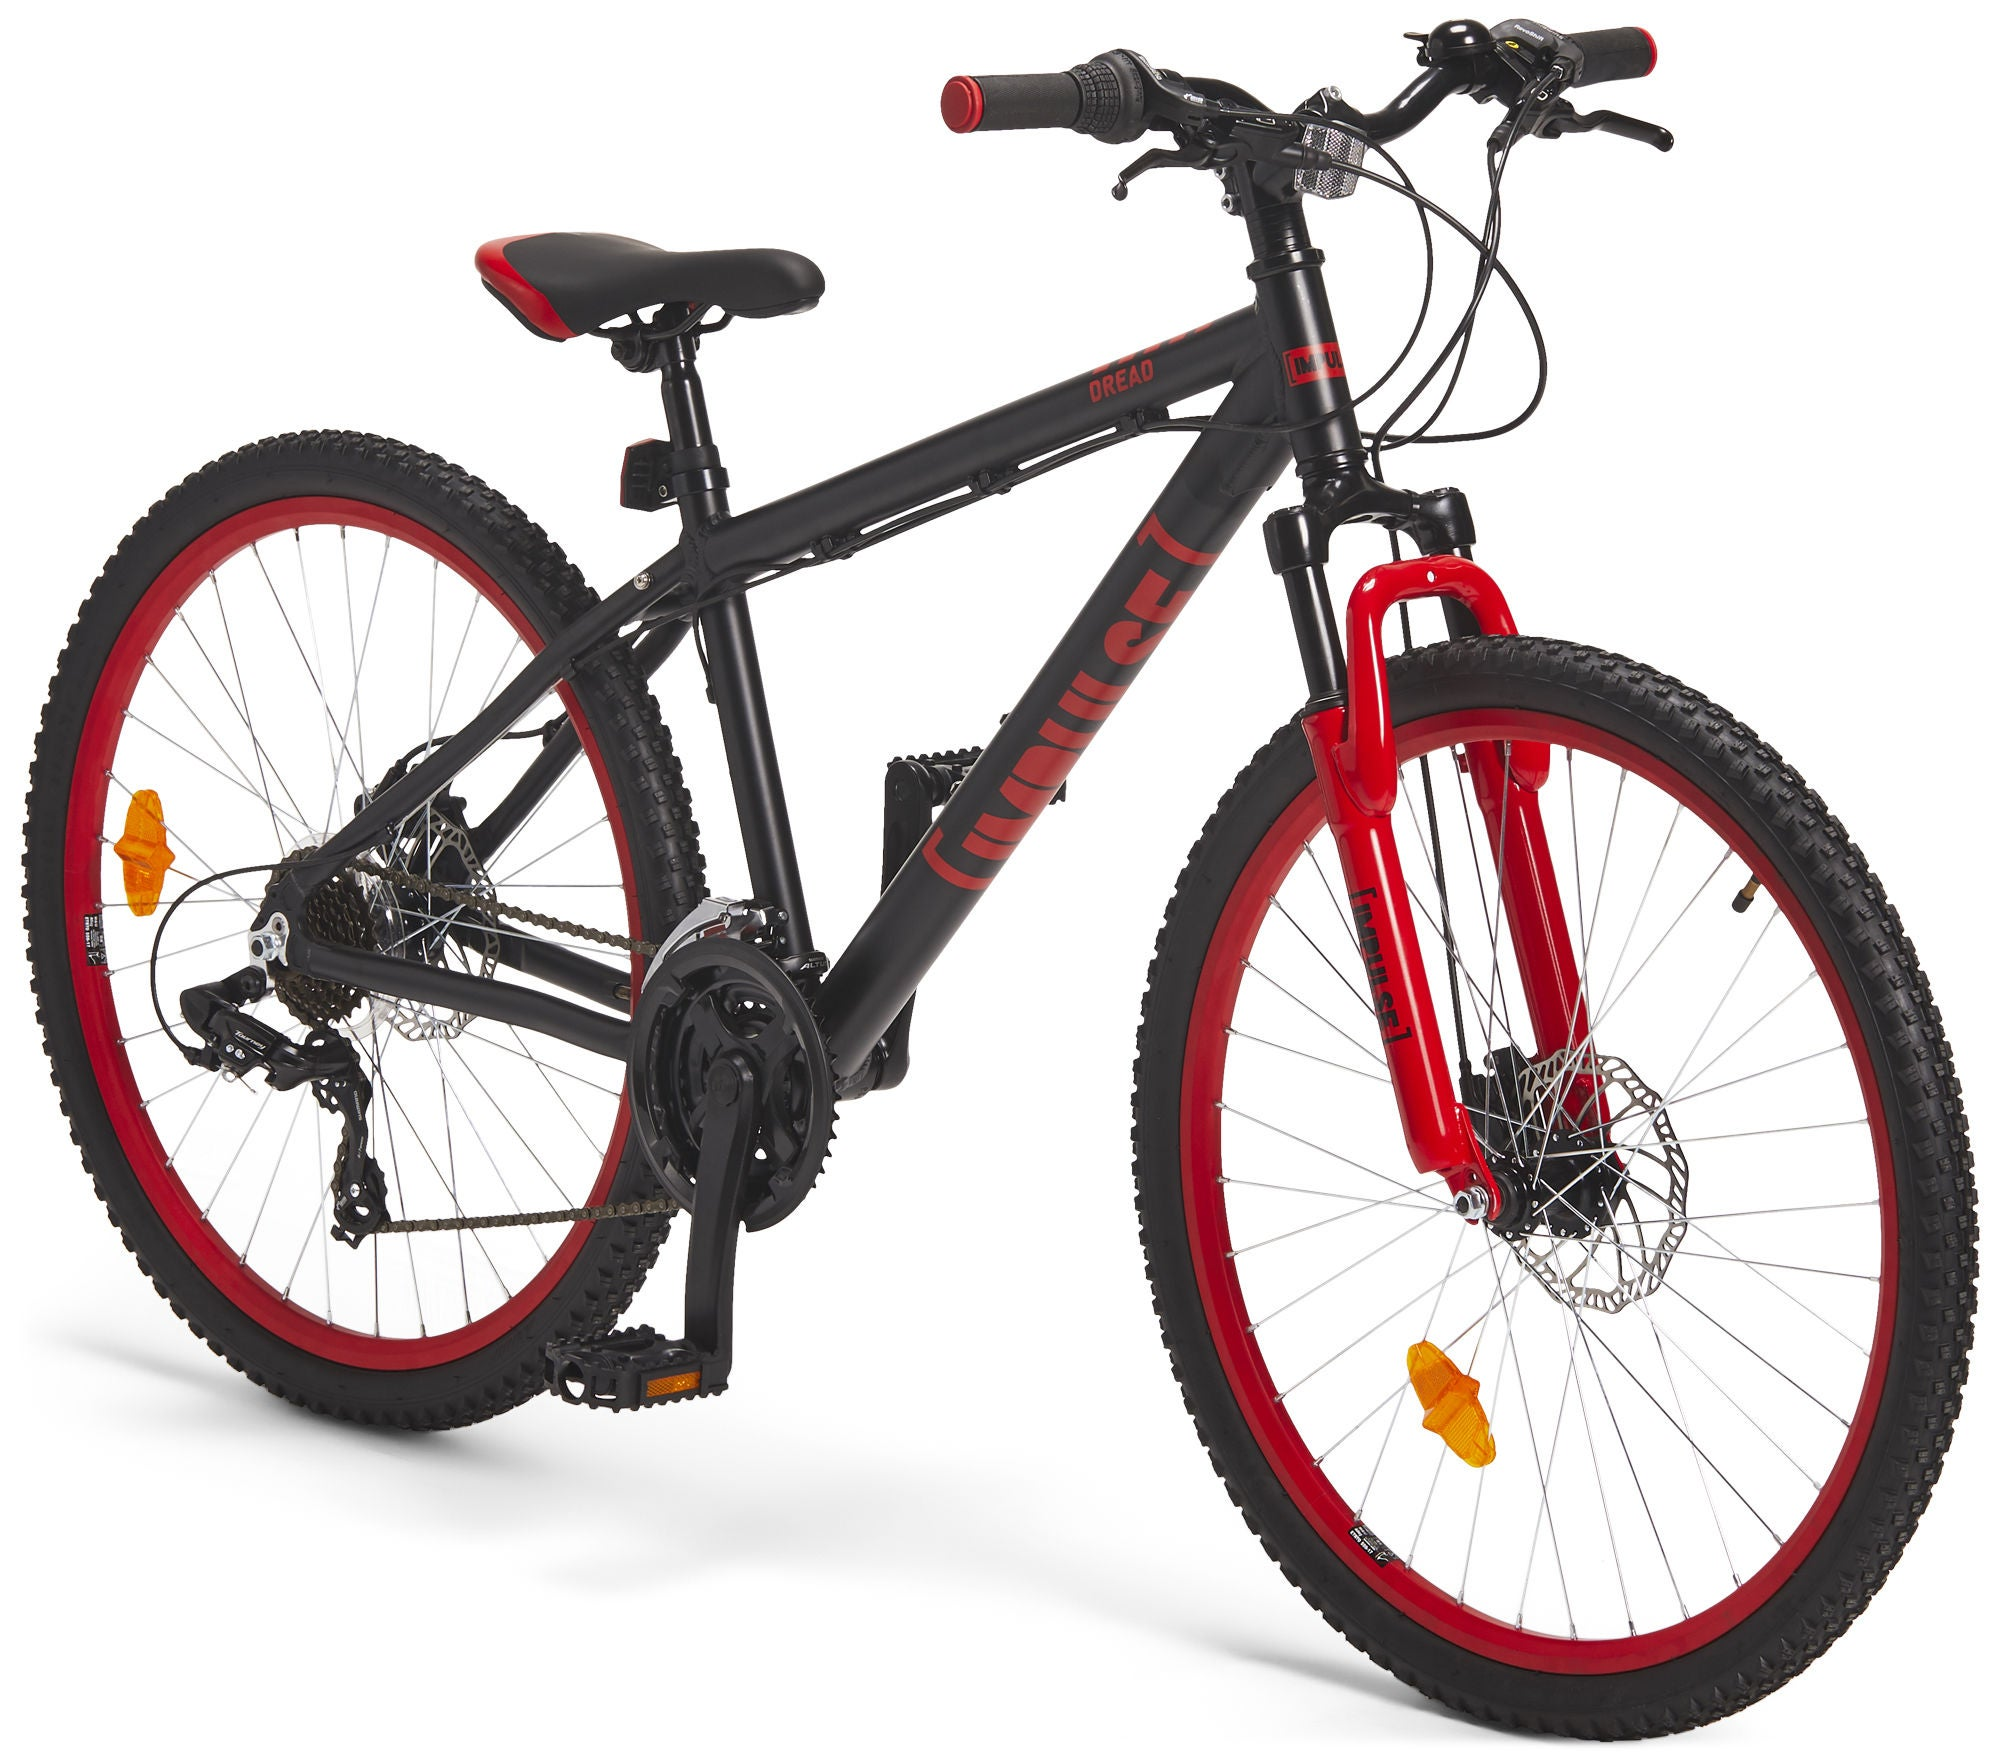 Impulse Premium Dread Mountainbike 26 Tommer, Black/Red